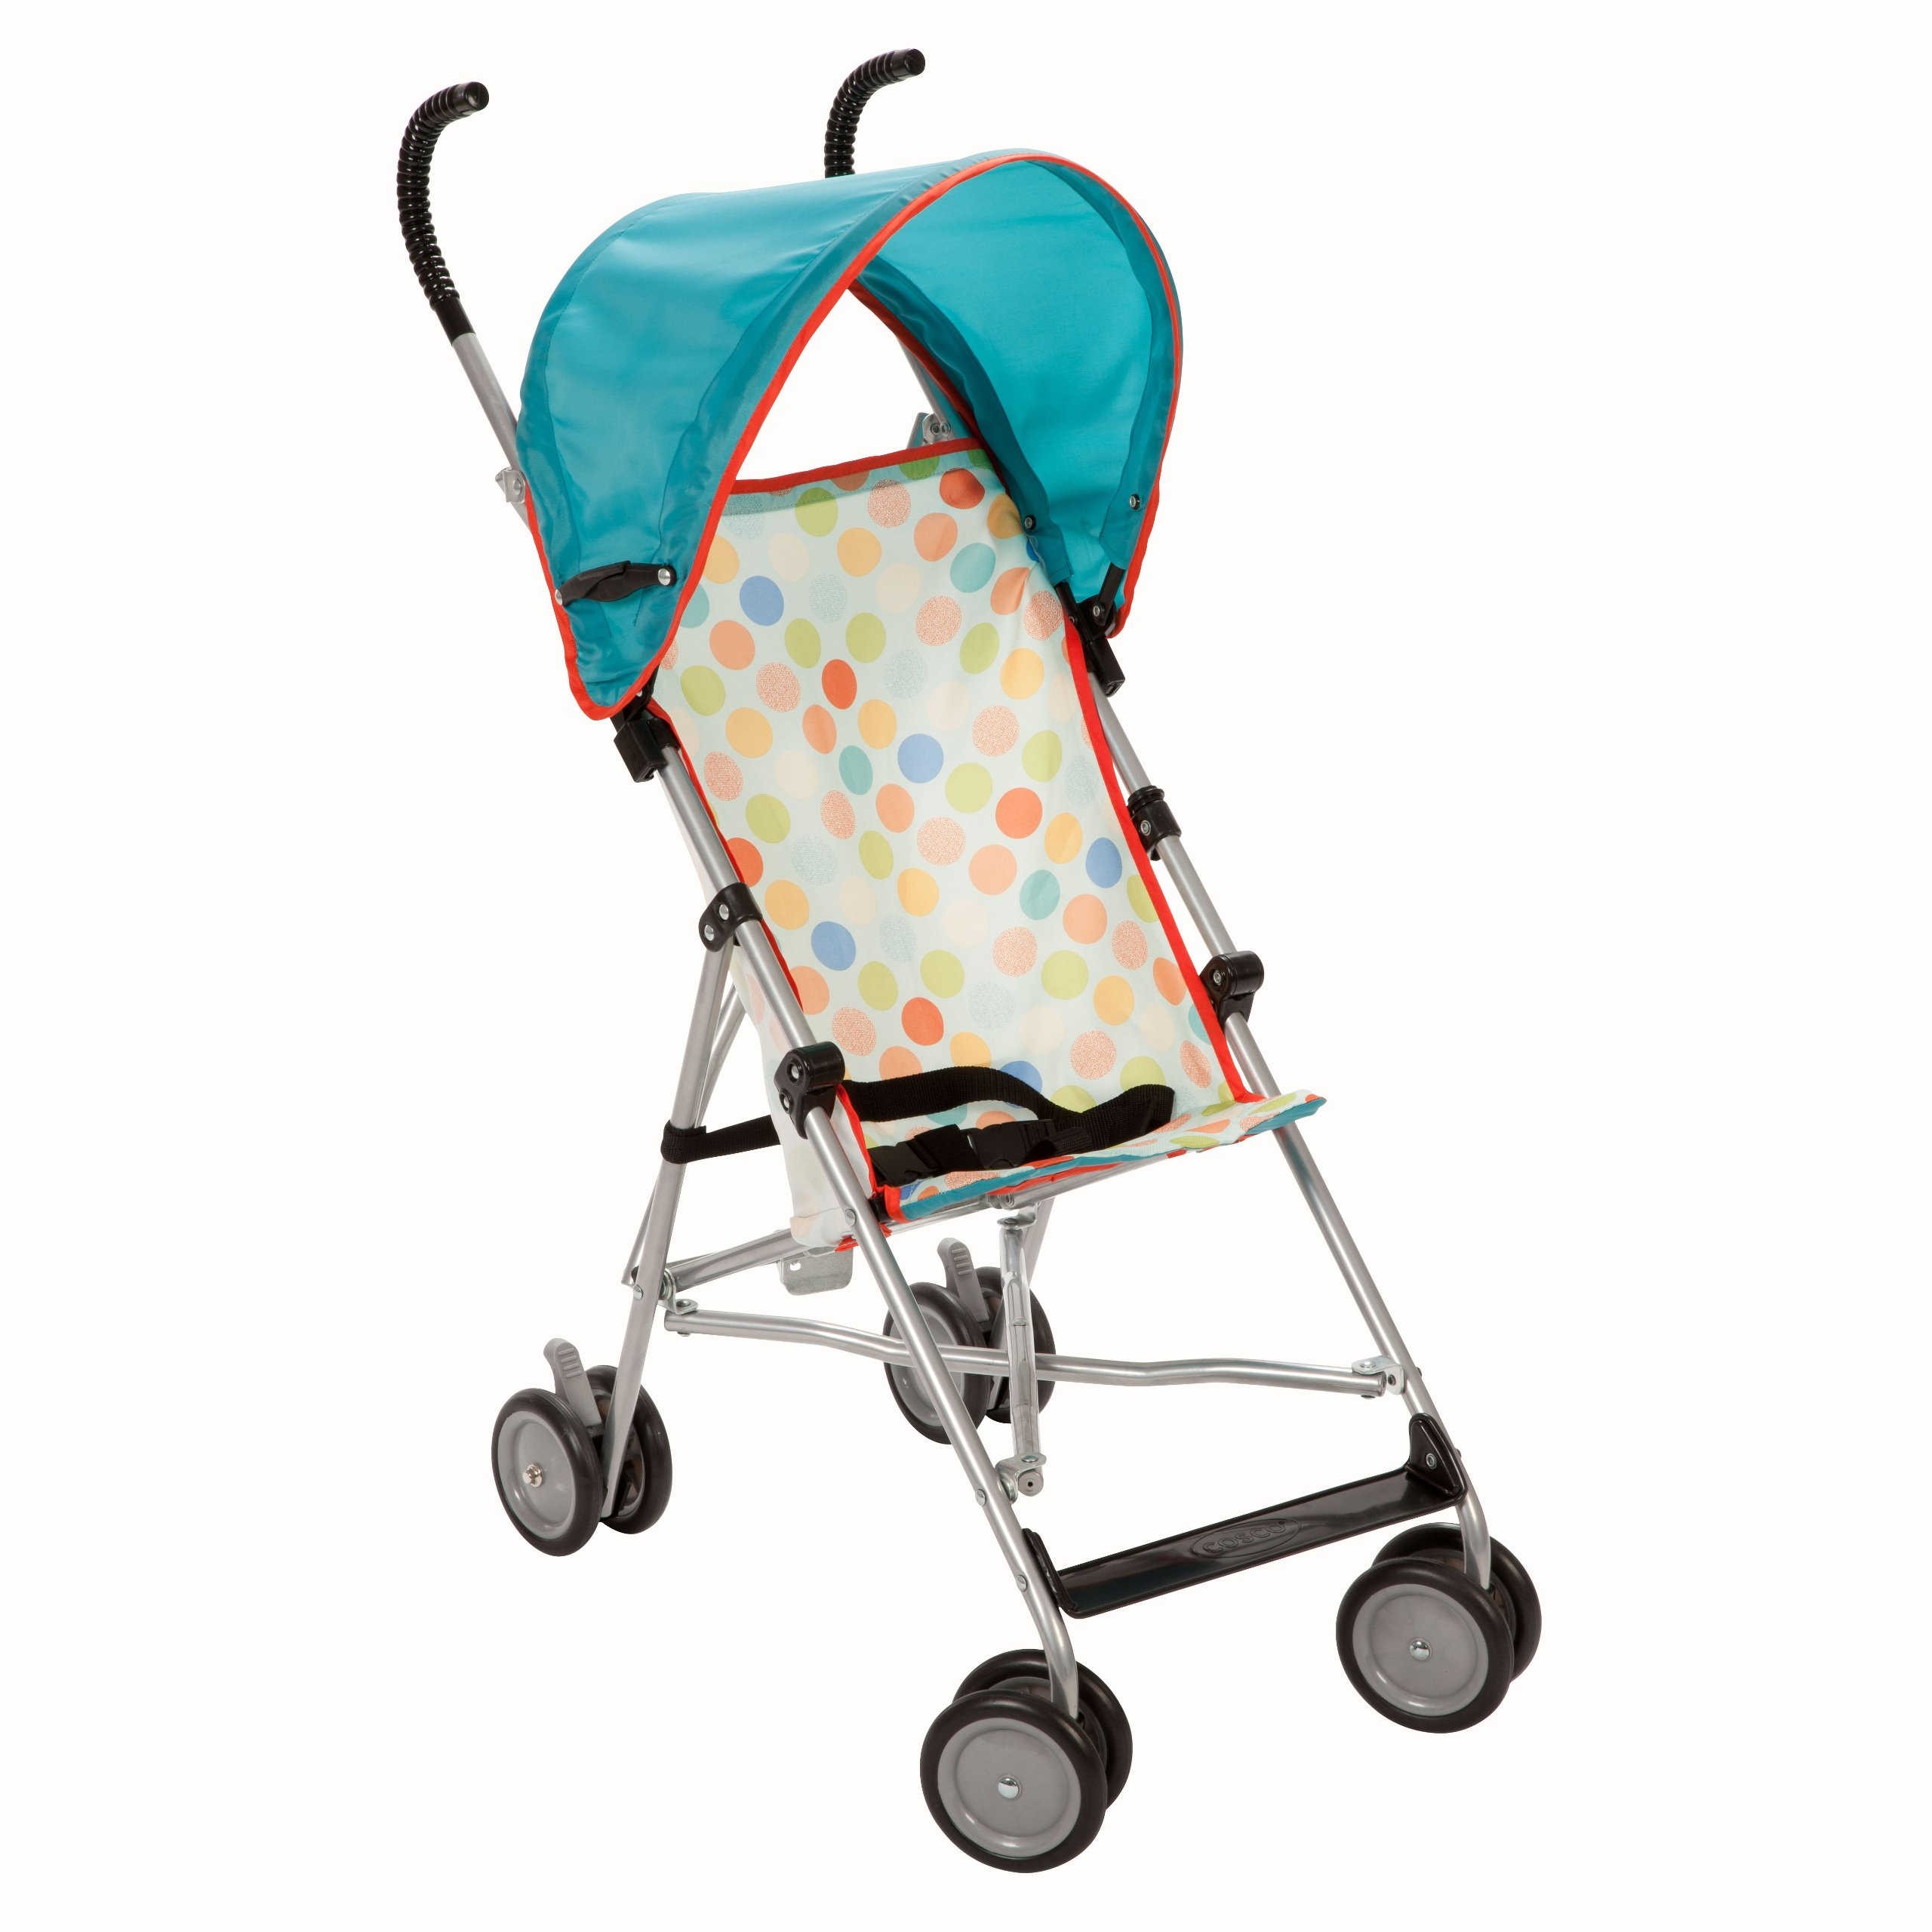 Cosco Umbrella Stroller with Canopy, Dots Prior Model)